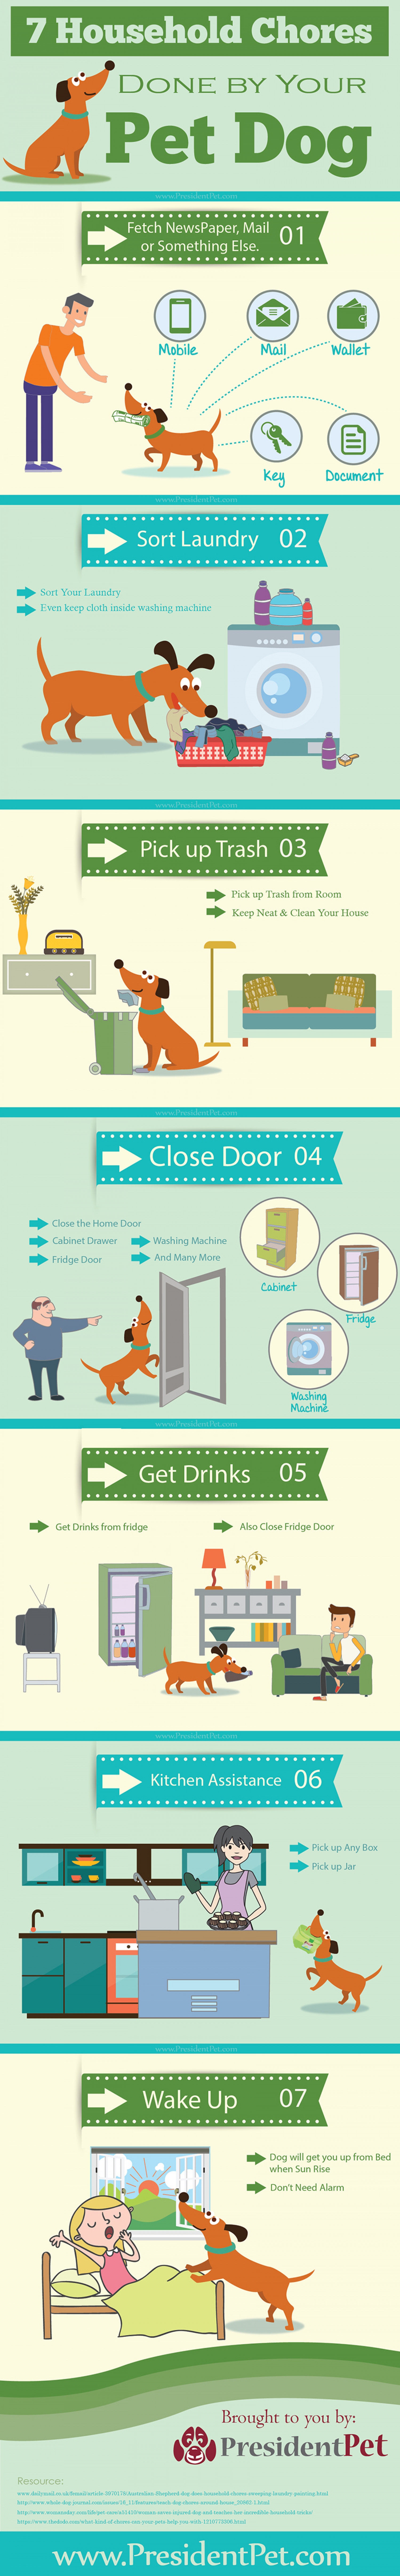 7 Household Chores done by your Pet Dog Infographic